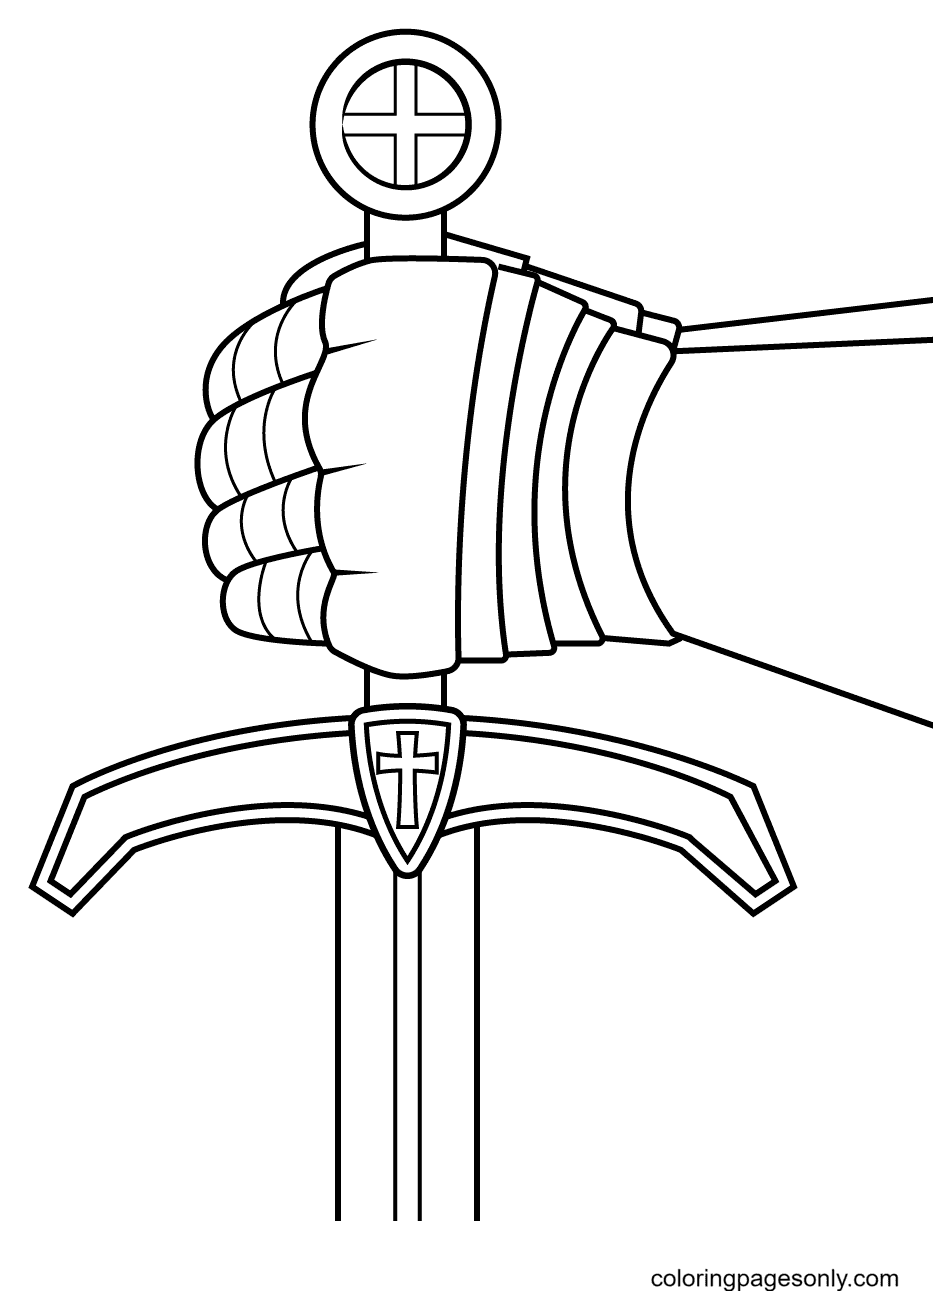 The Knight's Hand Holding the Hilt Coloring Page